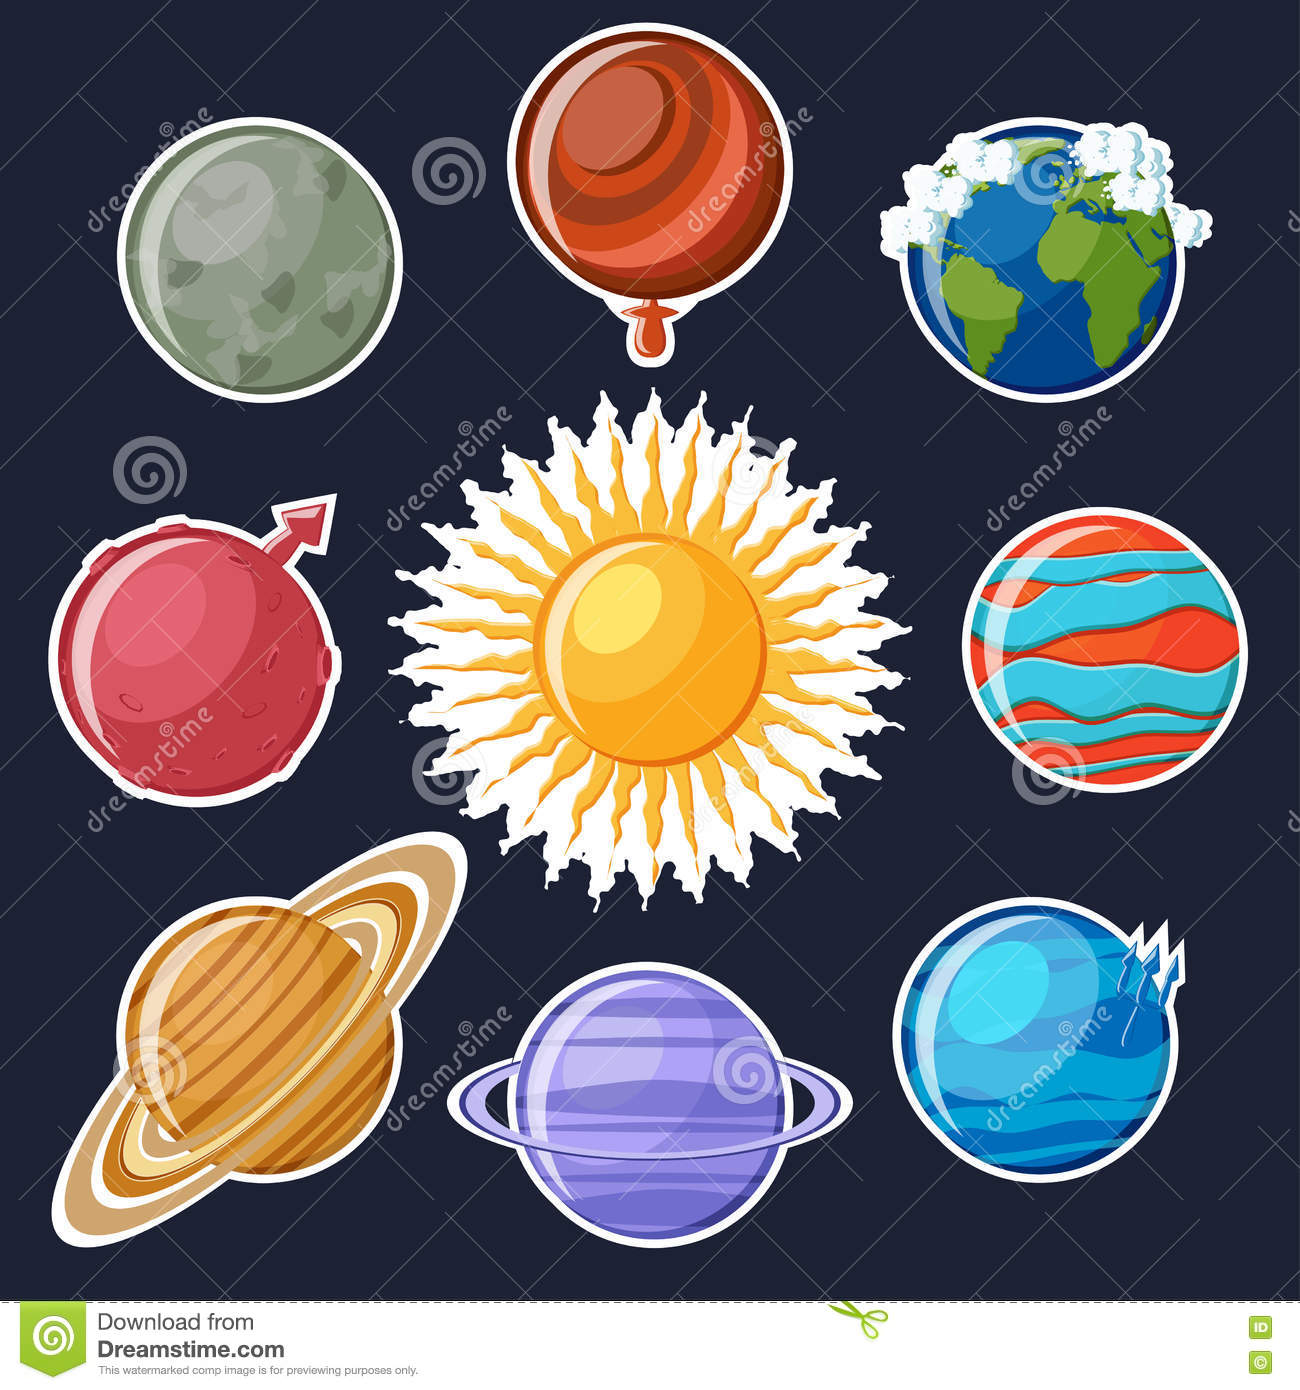 Solar System Or Planets Sticker Set. Stock Vector - Image: 79761248